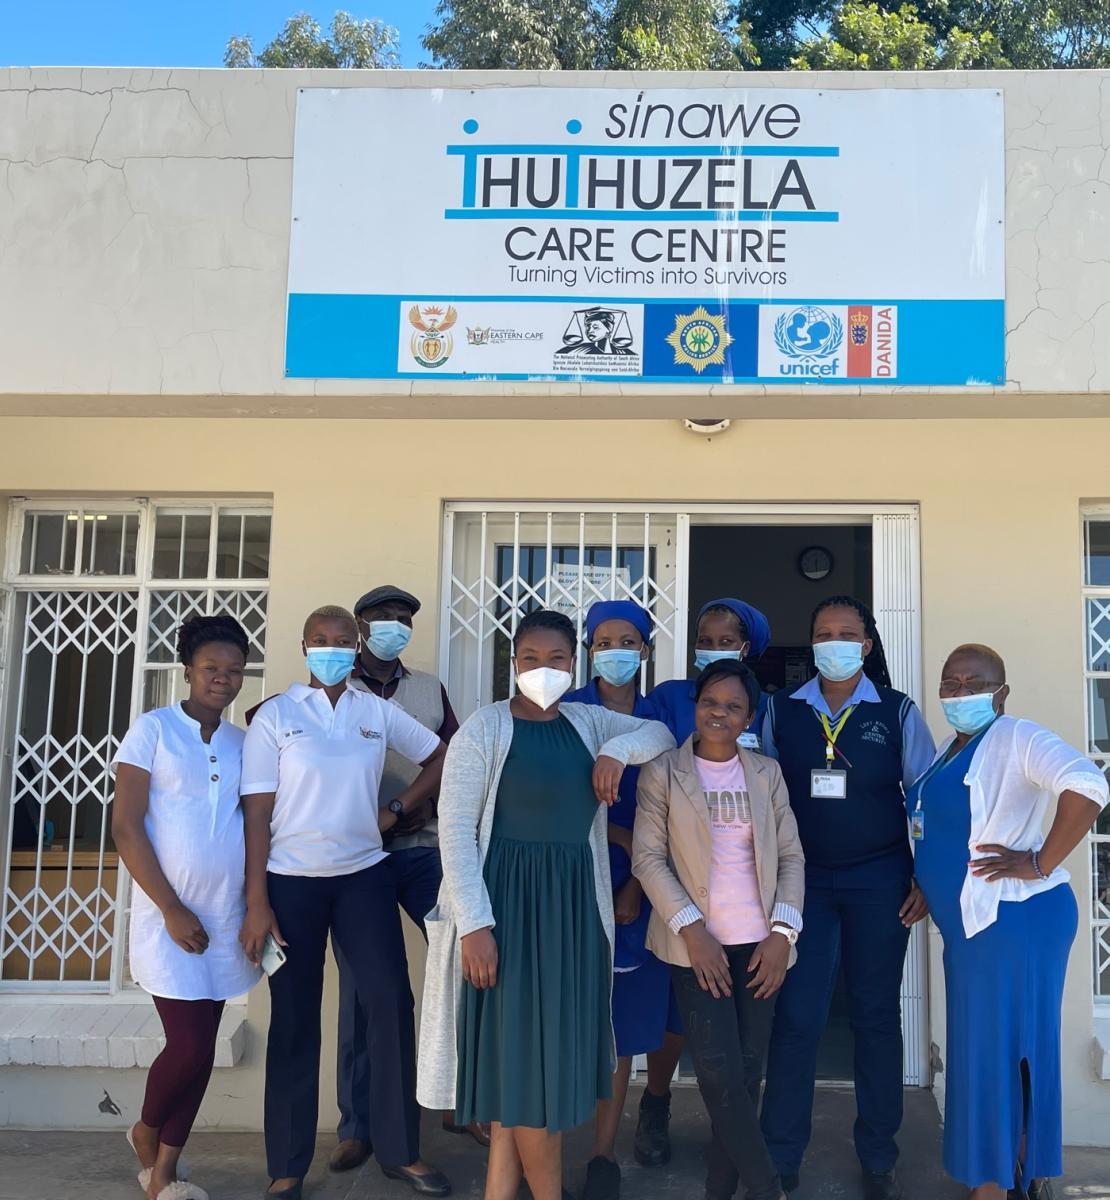 A group of people in face masks stand in front of a white building with a sign hanging above them.